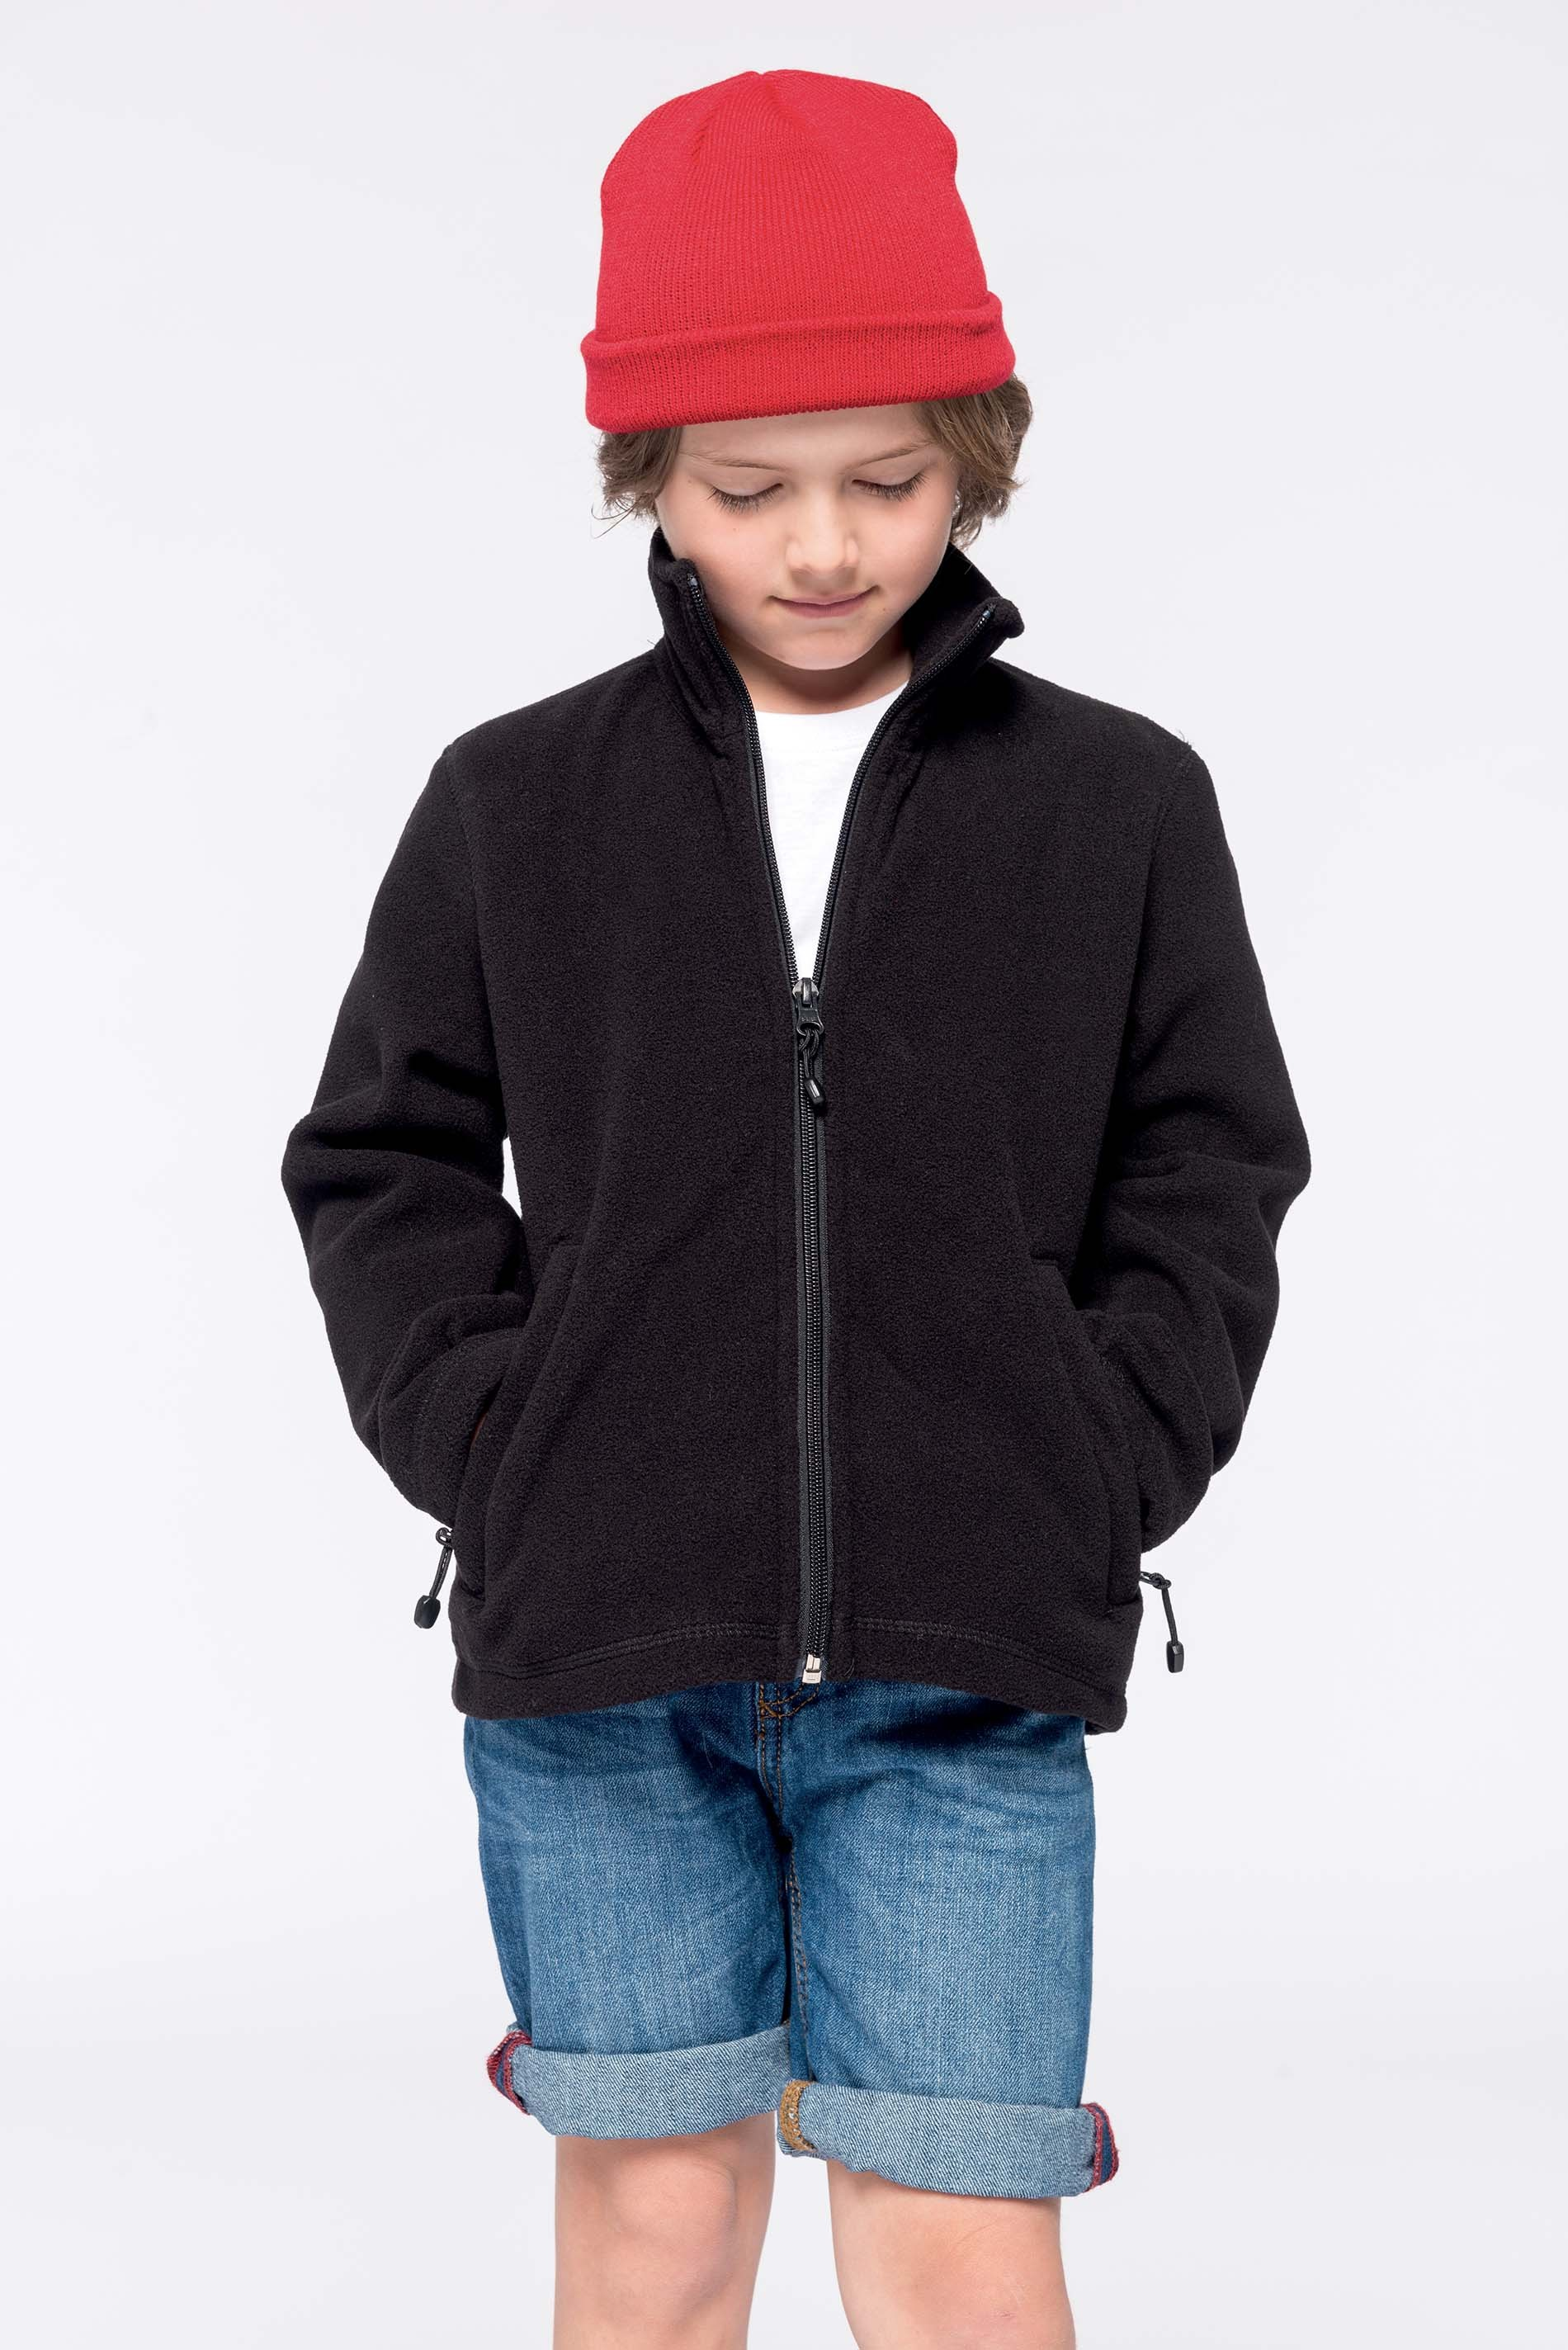 Kids' full zip fleece jacket bērnu flīsa jaka